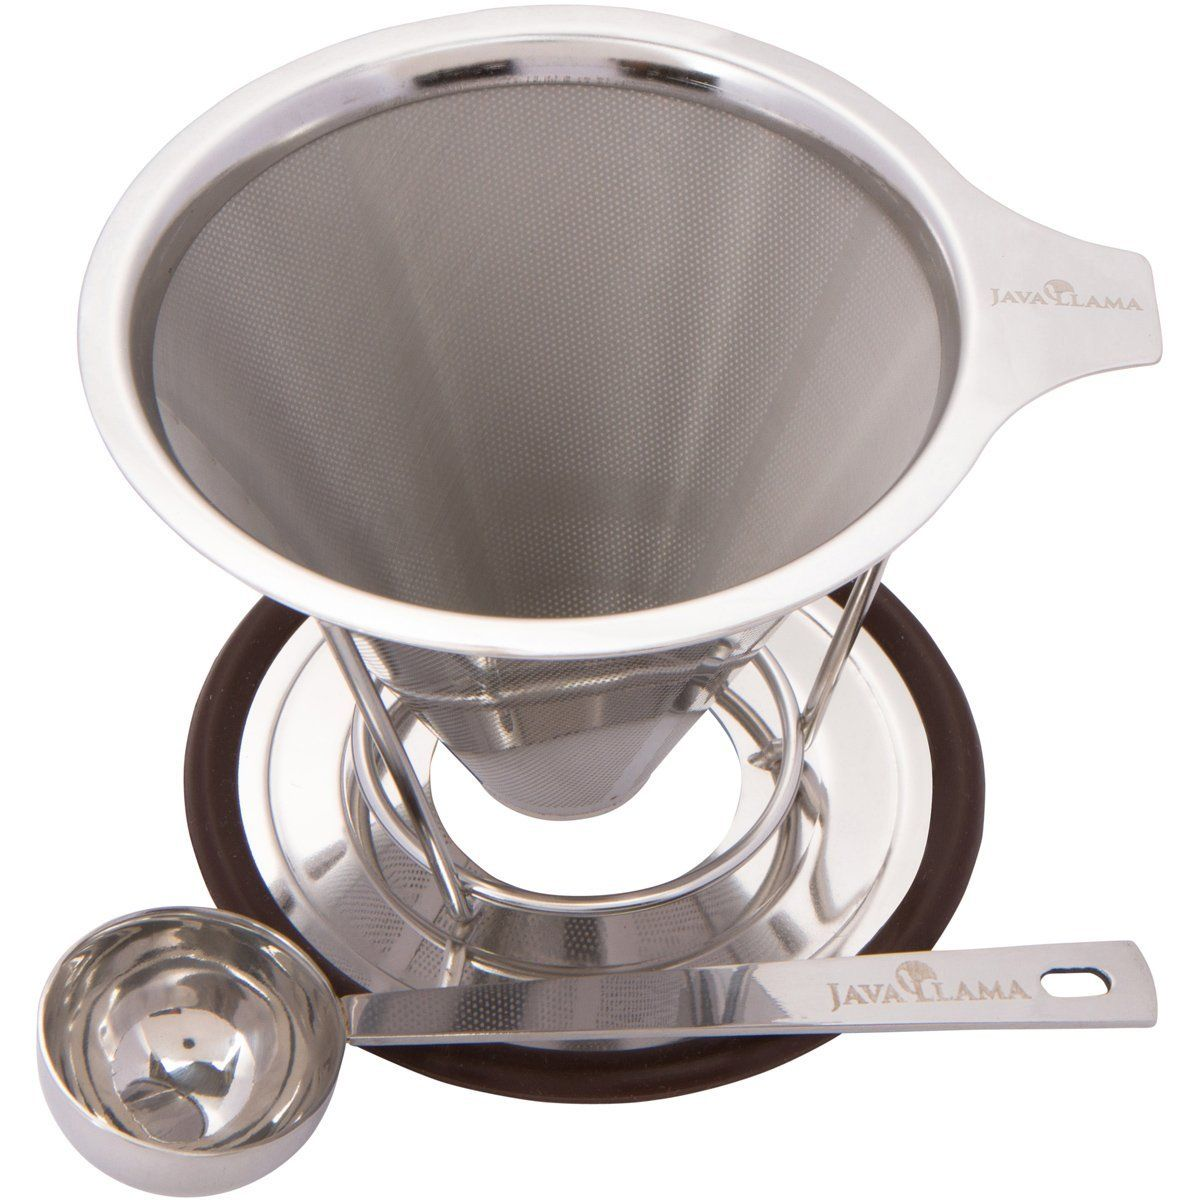 Java llama stainless steel pour over coffee maker find